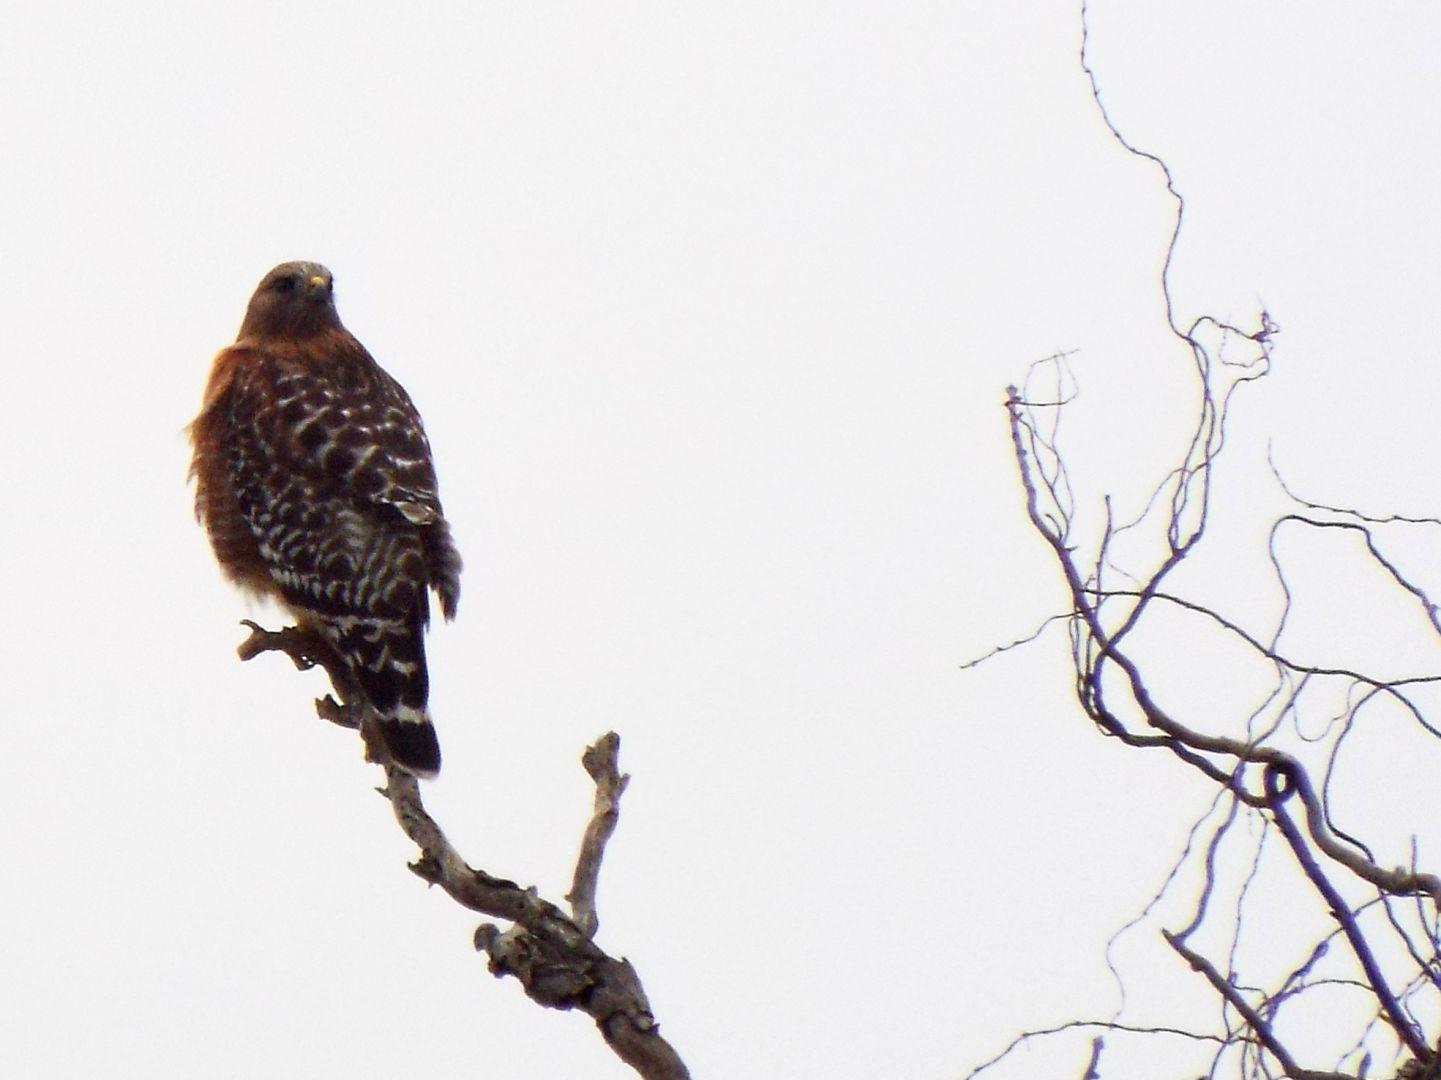 I've been seeing hawks lately when I'm out looking for birds. Partly, I suspect, because I'm actually *looking*. This one would probably have been very interested in the squirrel I spotted a minute or so earlier!